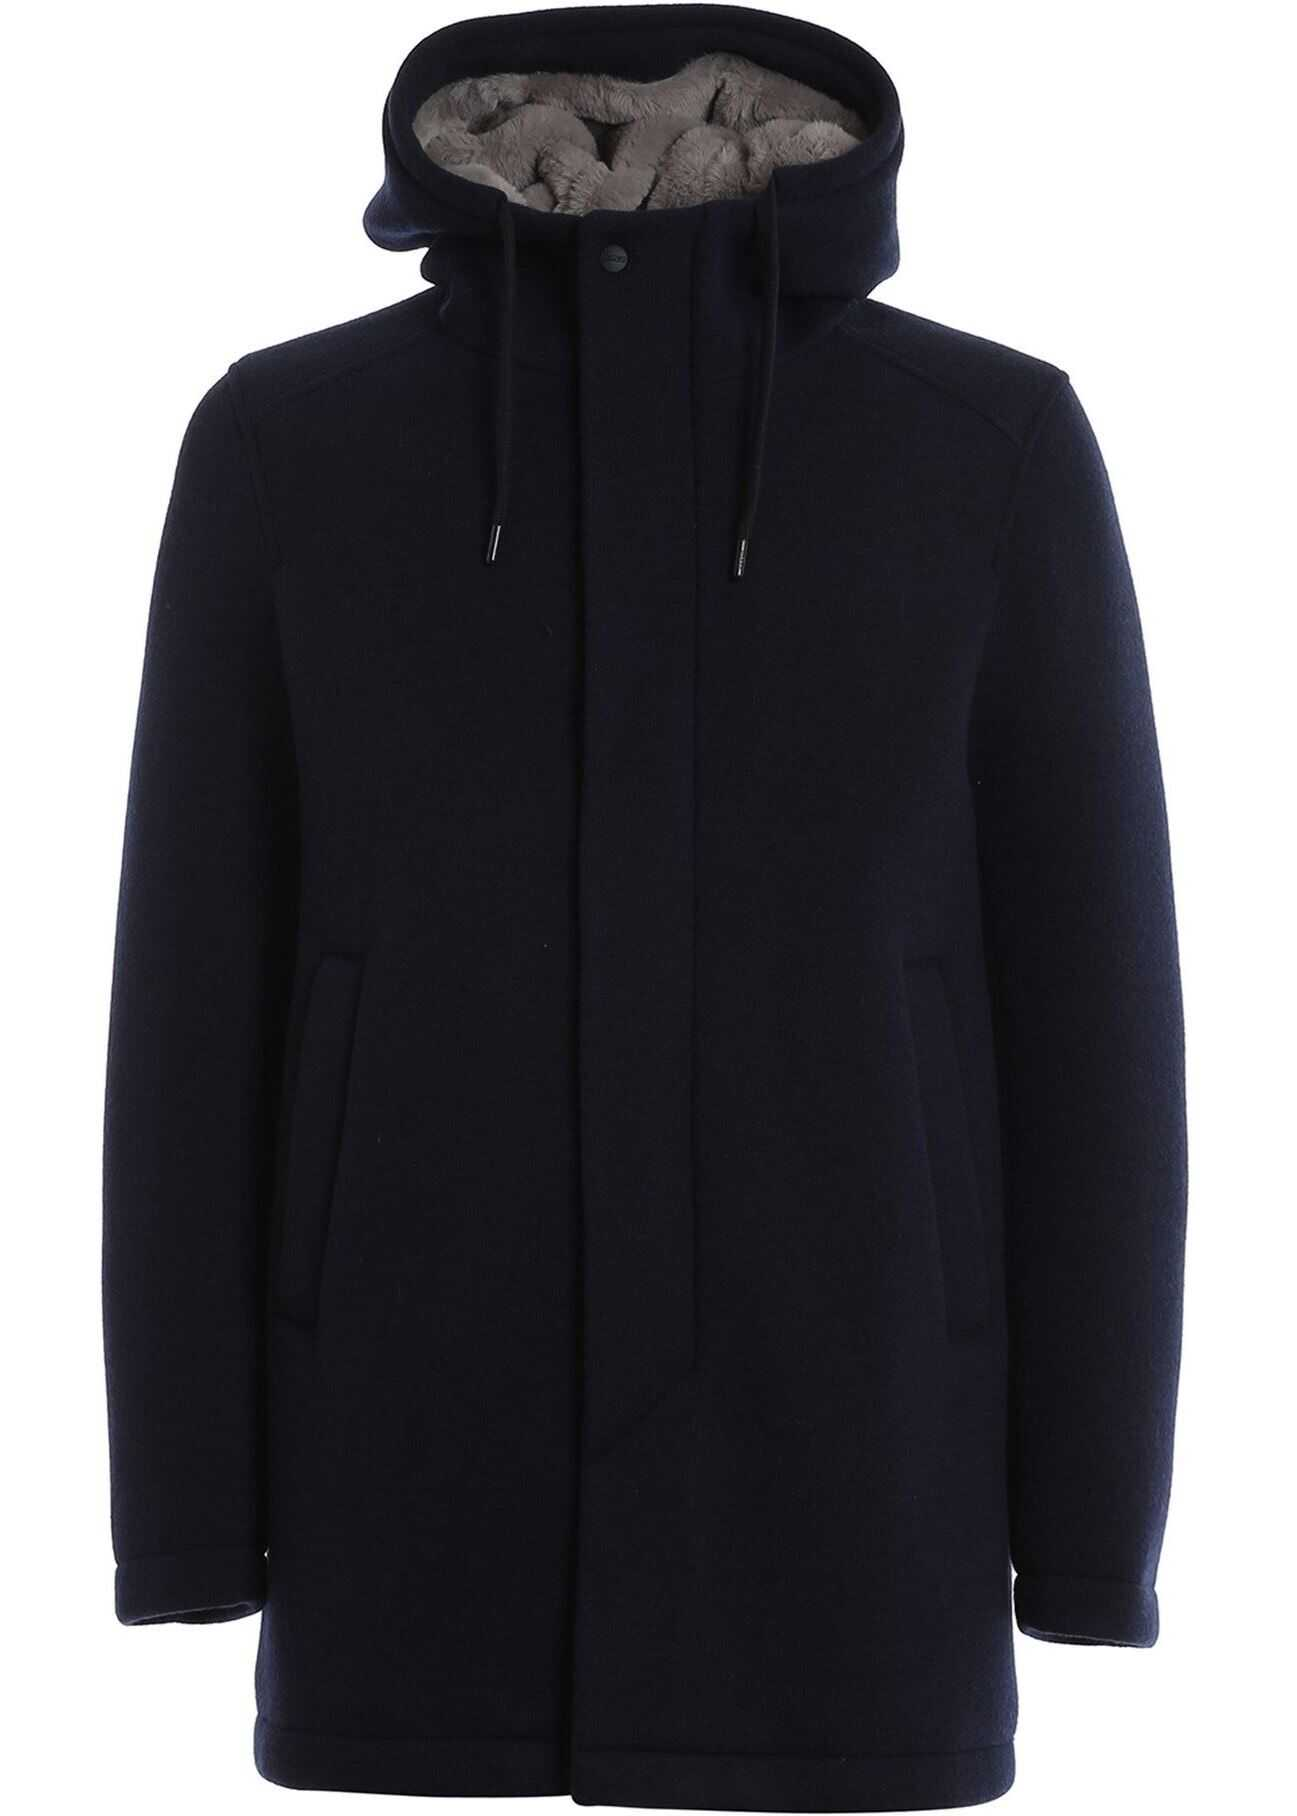 Herno Blue Padded Coat In Wool Blend Blue imagine